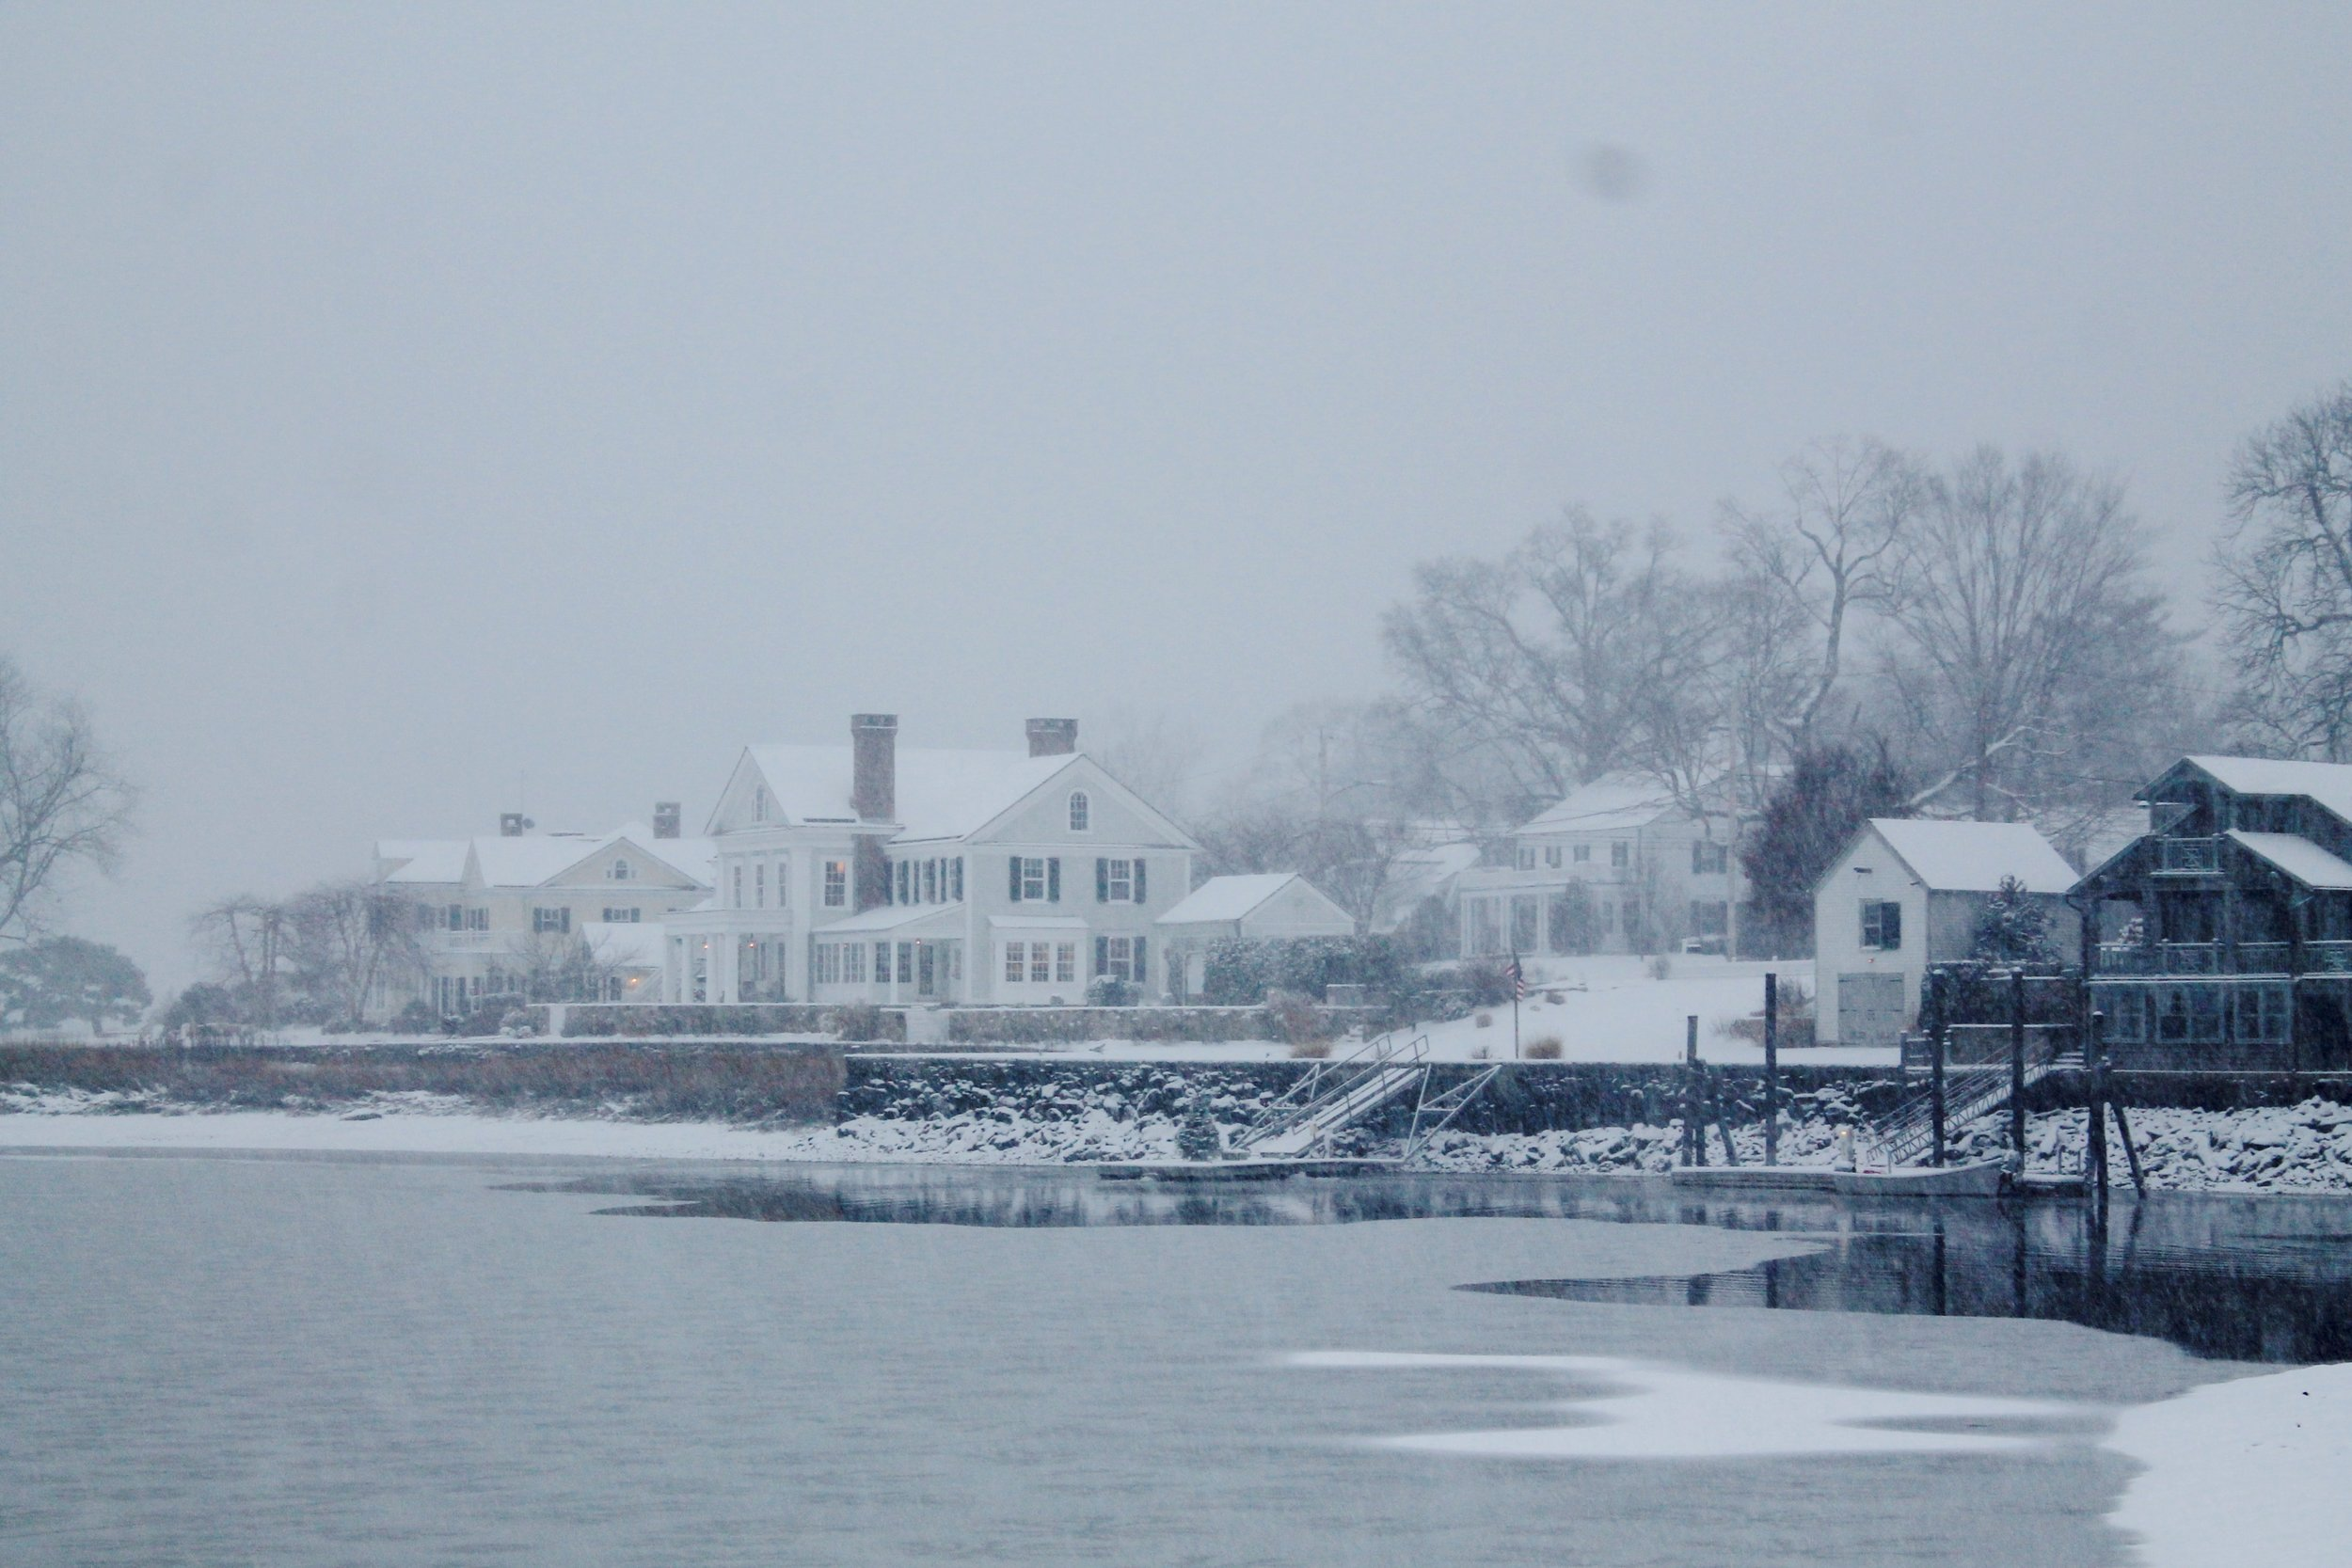 Snowy Scenes from a Coastal New England Town. Southport, Connecticut. ll images property of Jessica Gordon Ryan/The Entertaining House